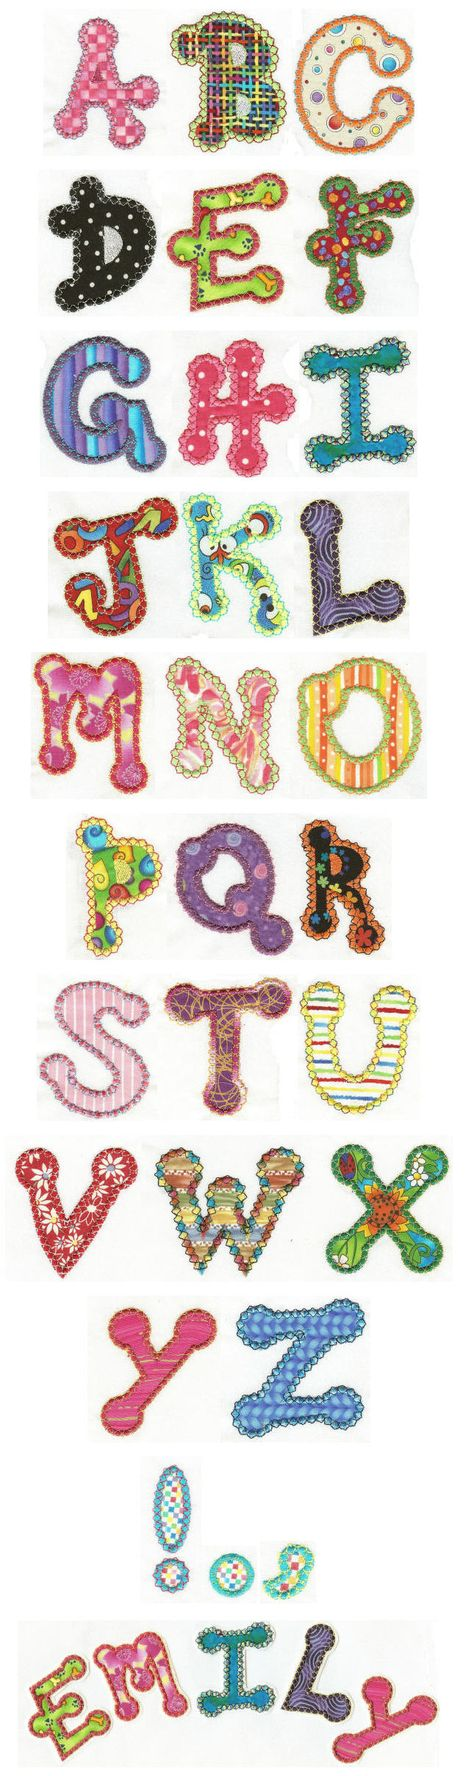 free applique alphabet patterns   Embroidery   Free machine embroidery designs   Dotty Applique Alphabet